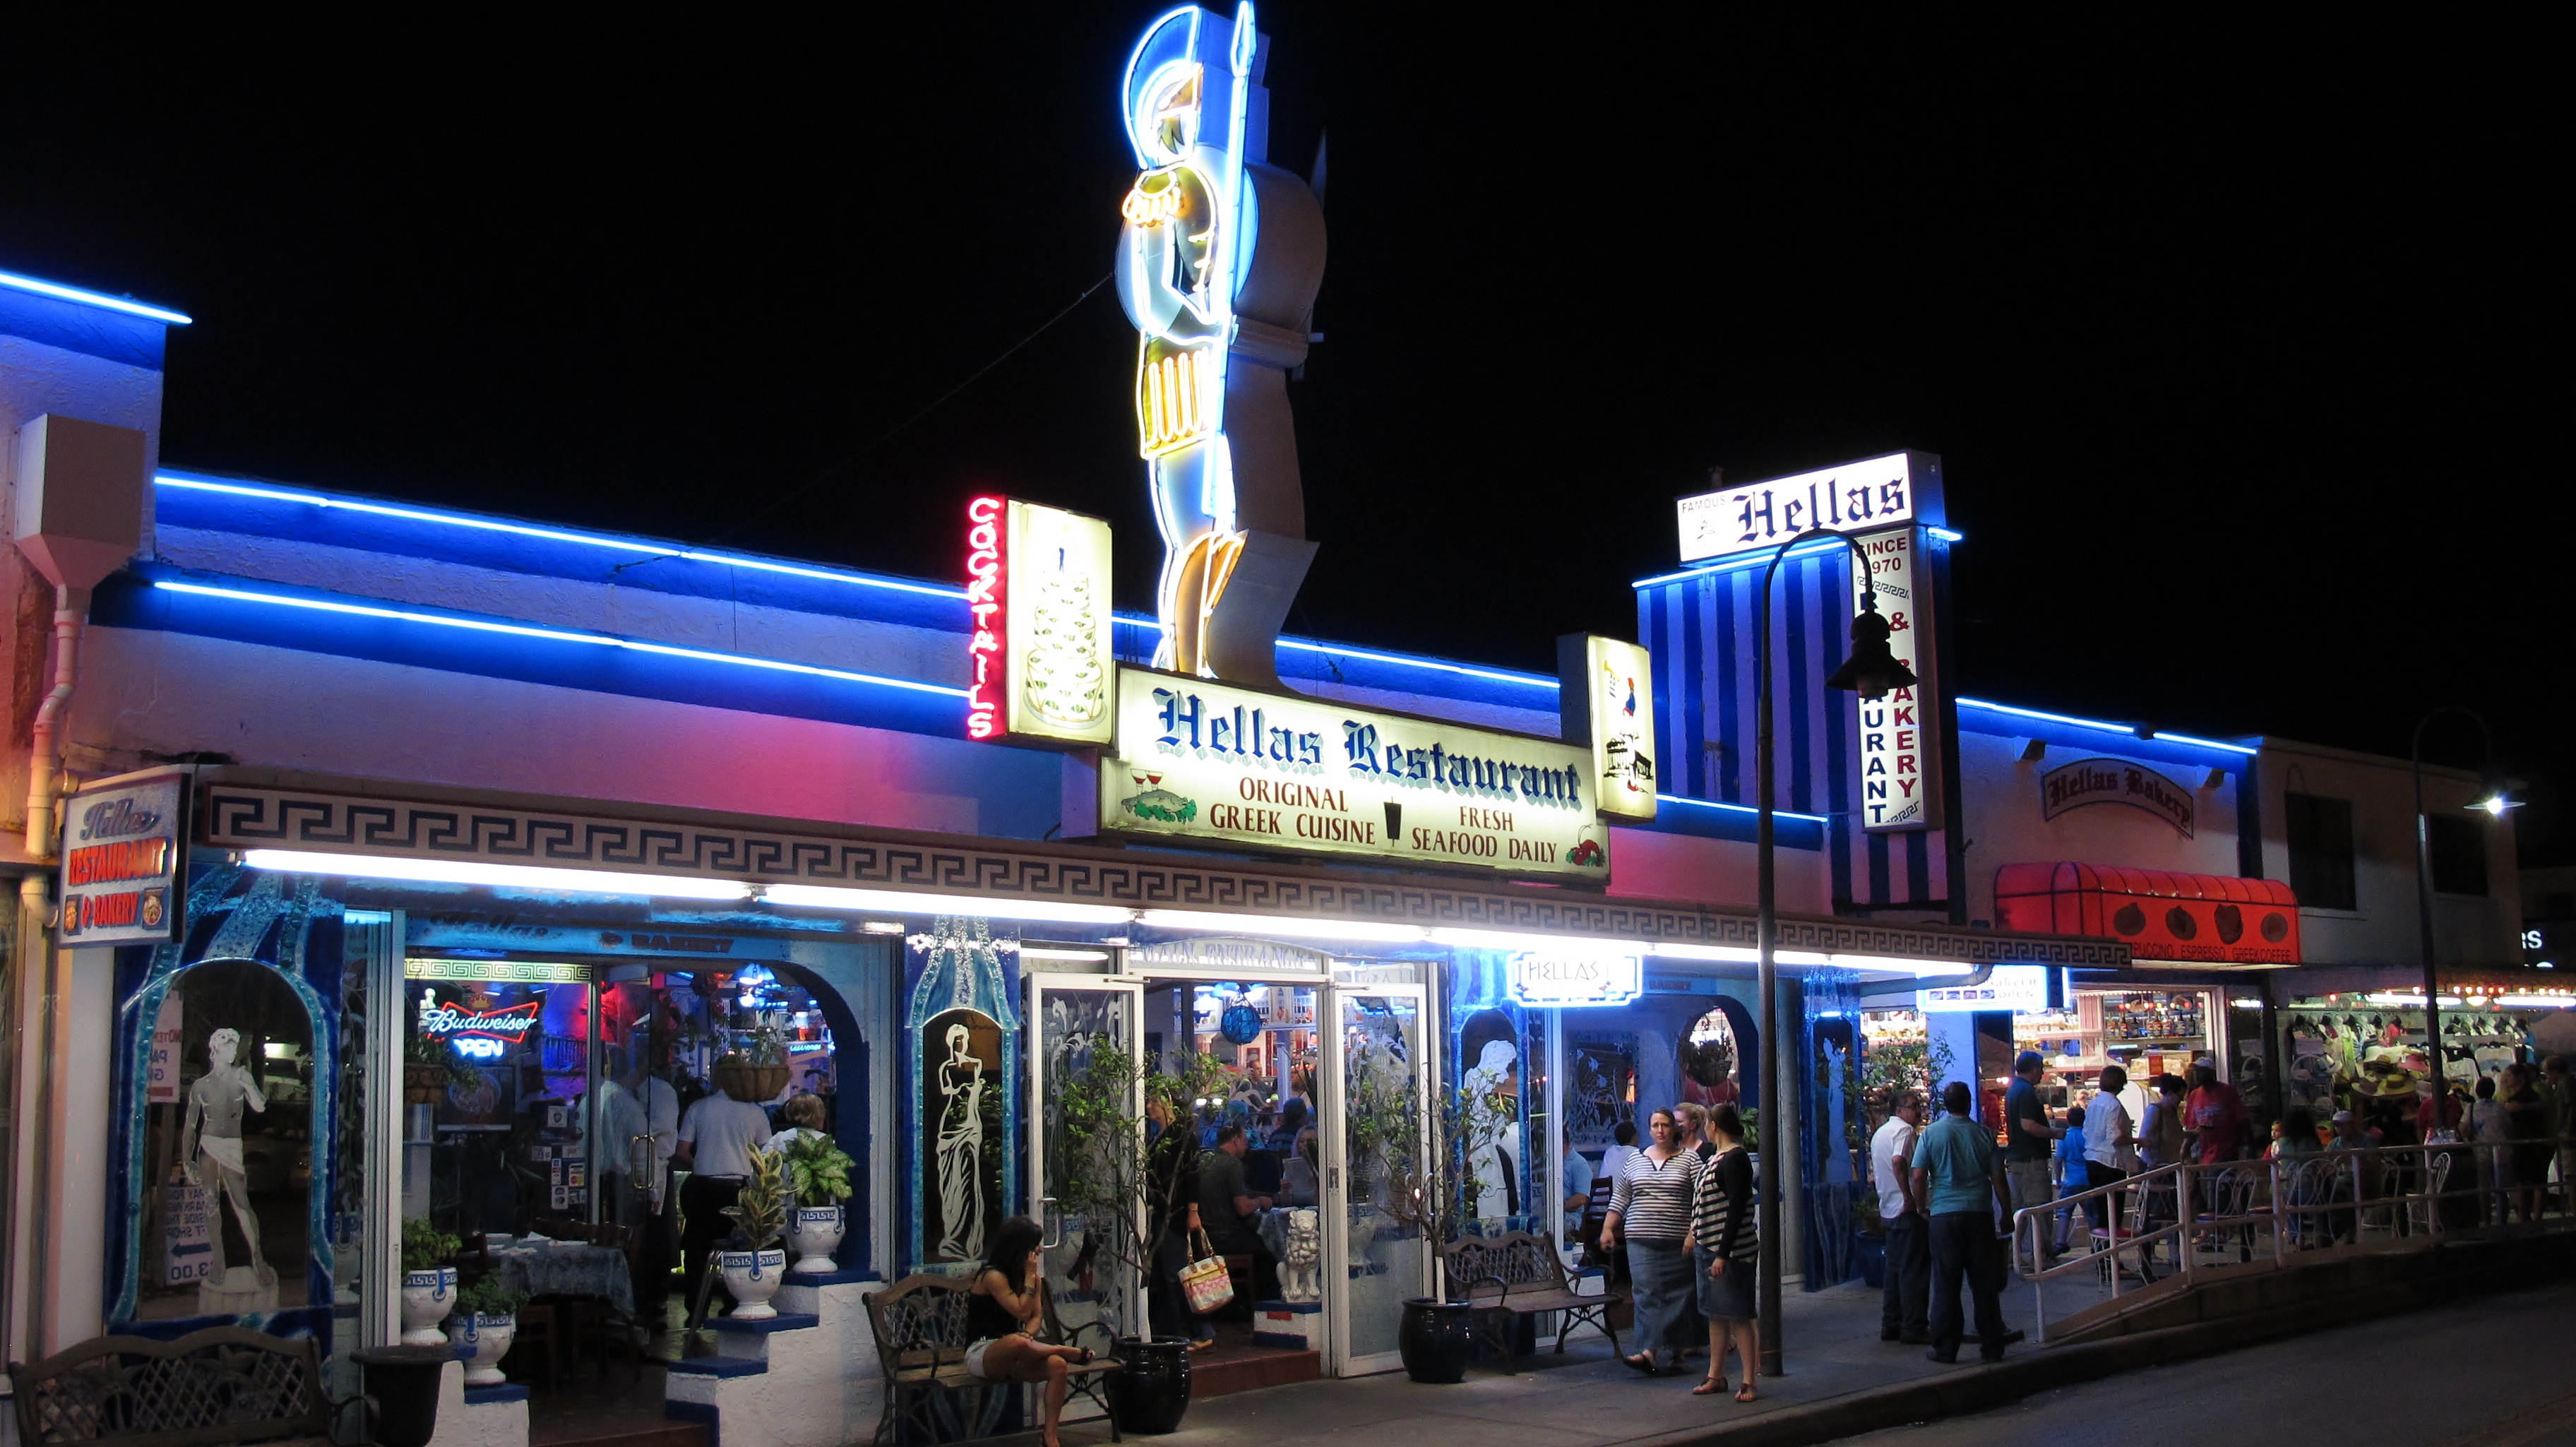 Gallery images and information kos greece nightlife - View Image